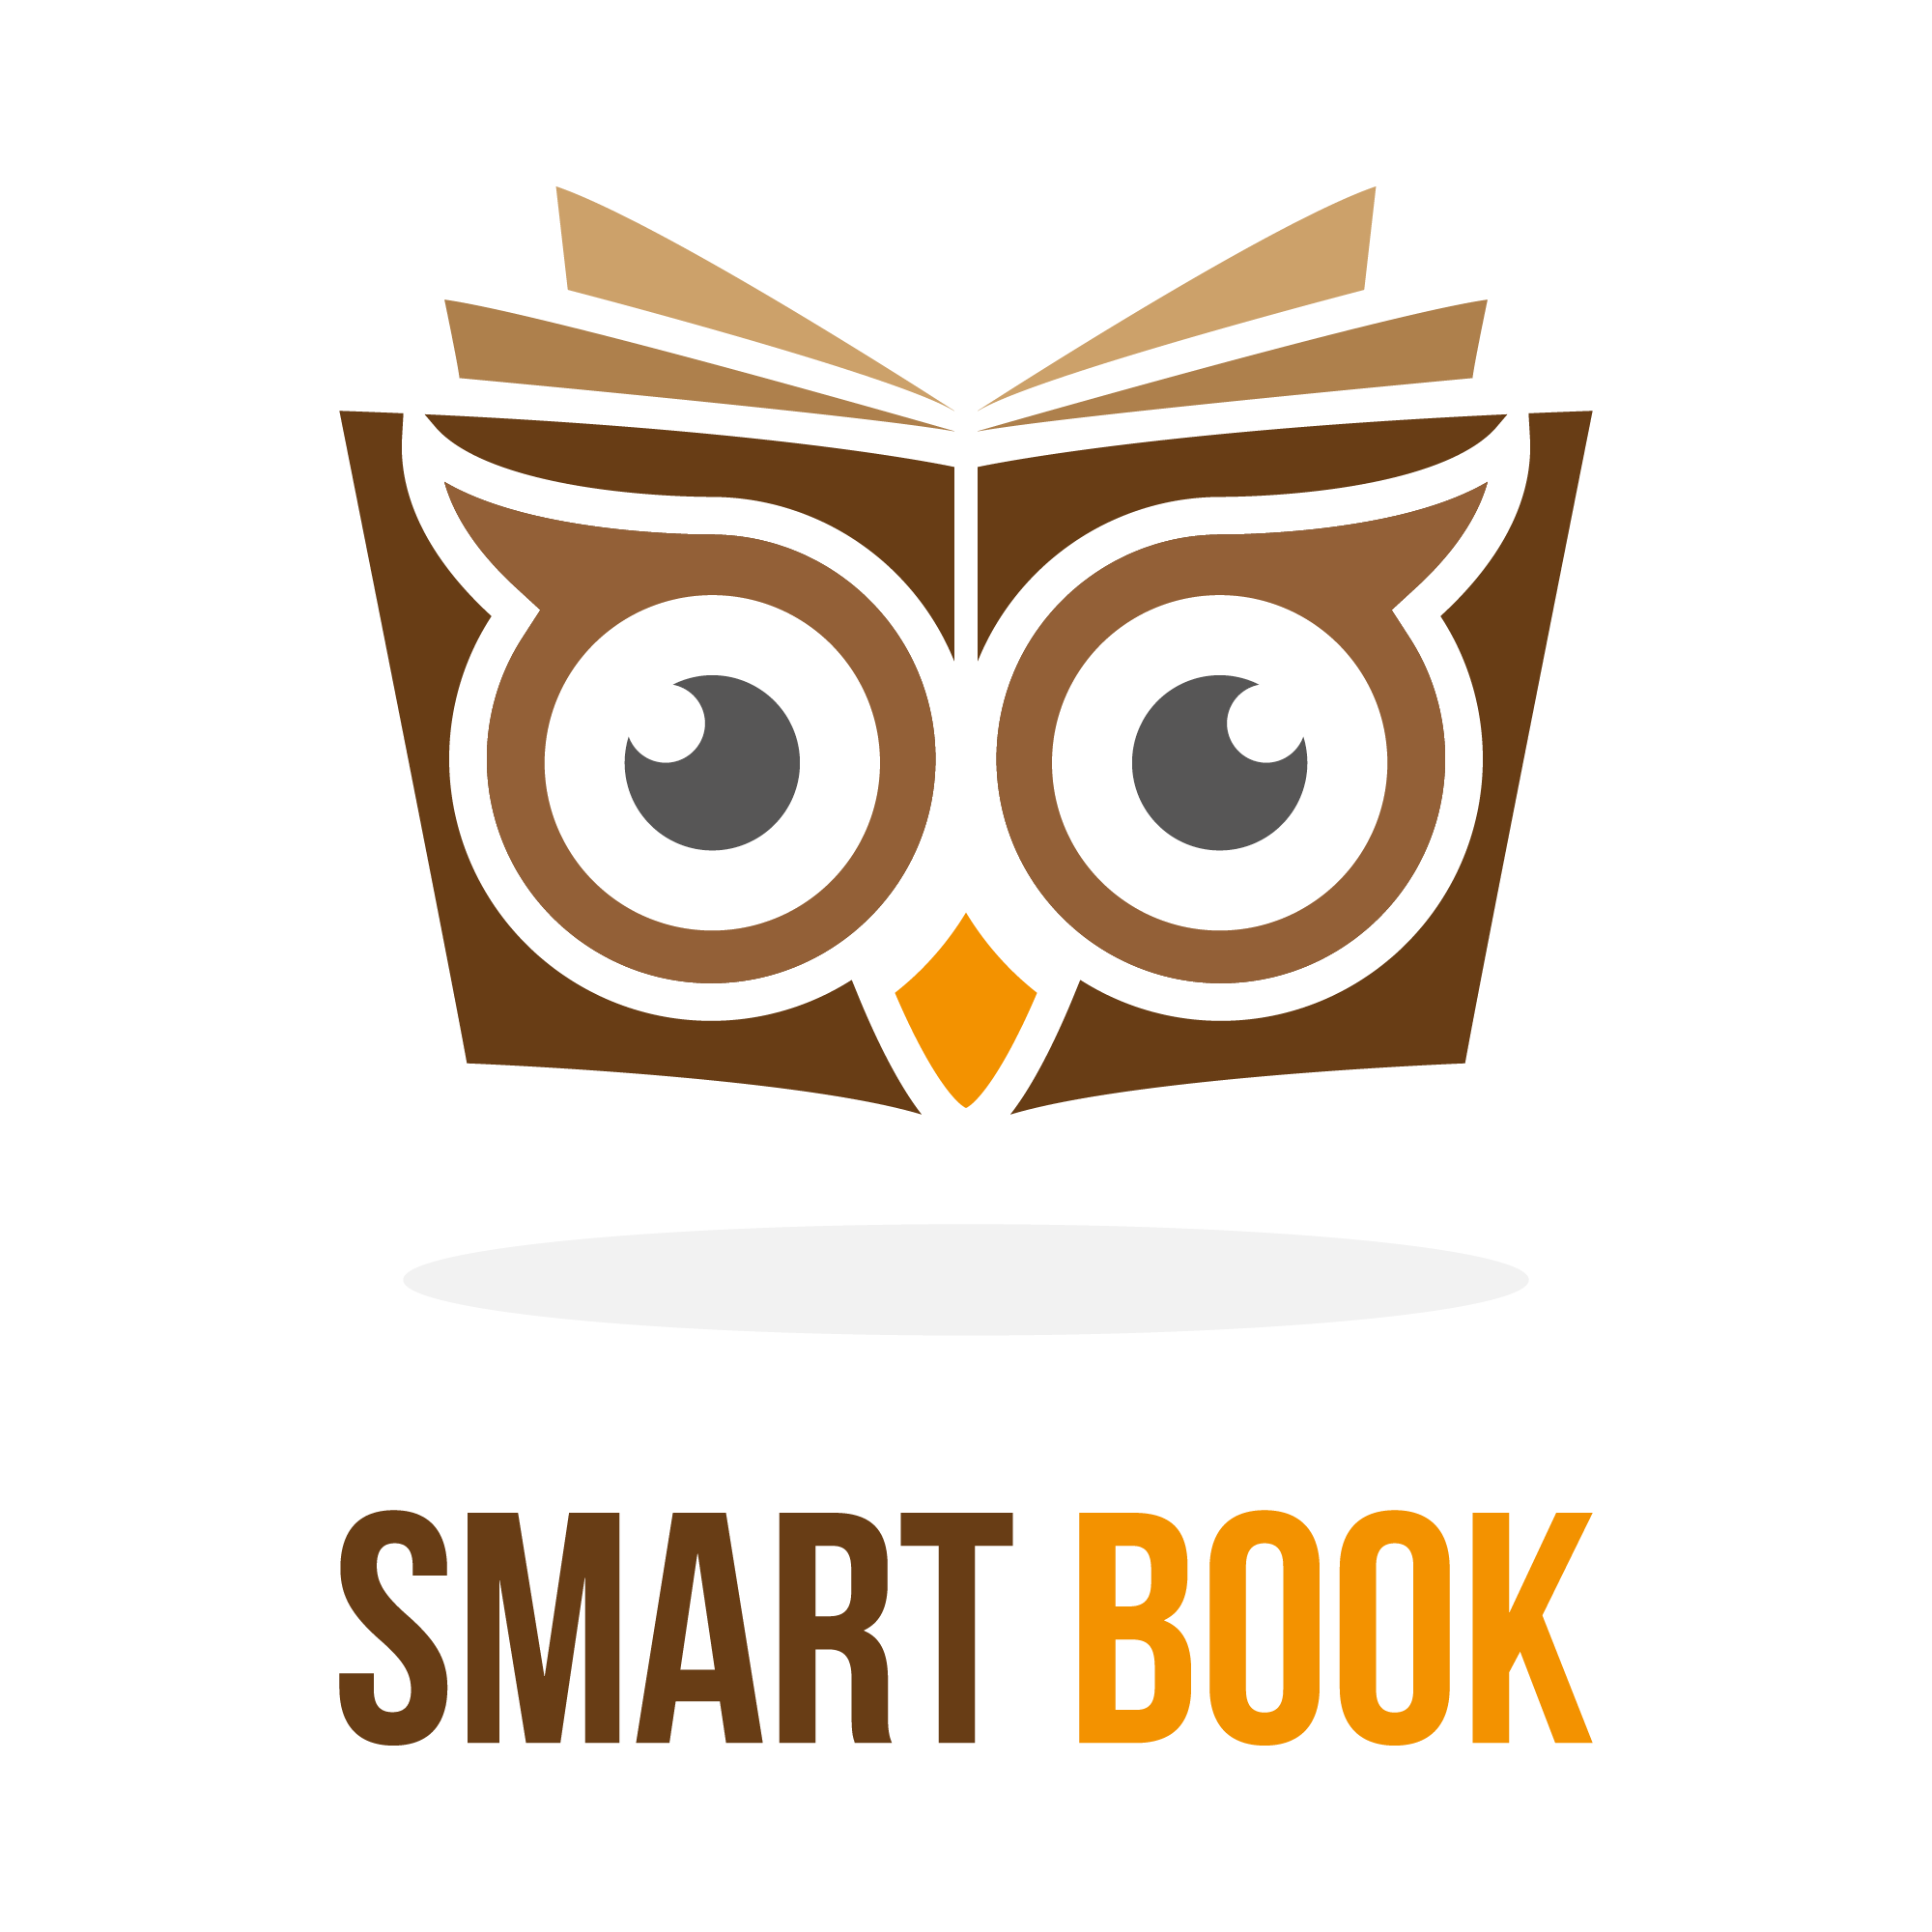 Clipart smart owl colored book image transparent download Smart book | Brands of the World™ | Download vector logos and logotypes image transparent download